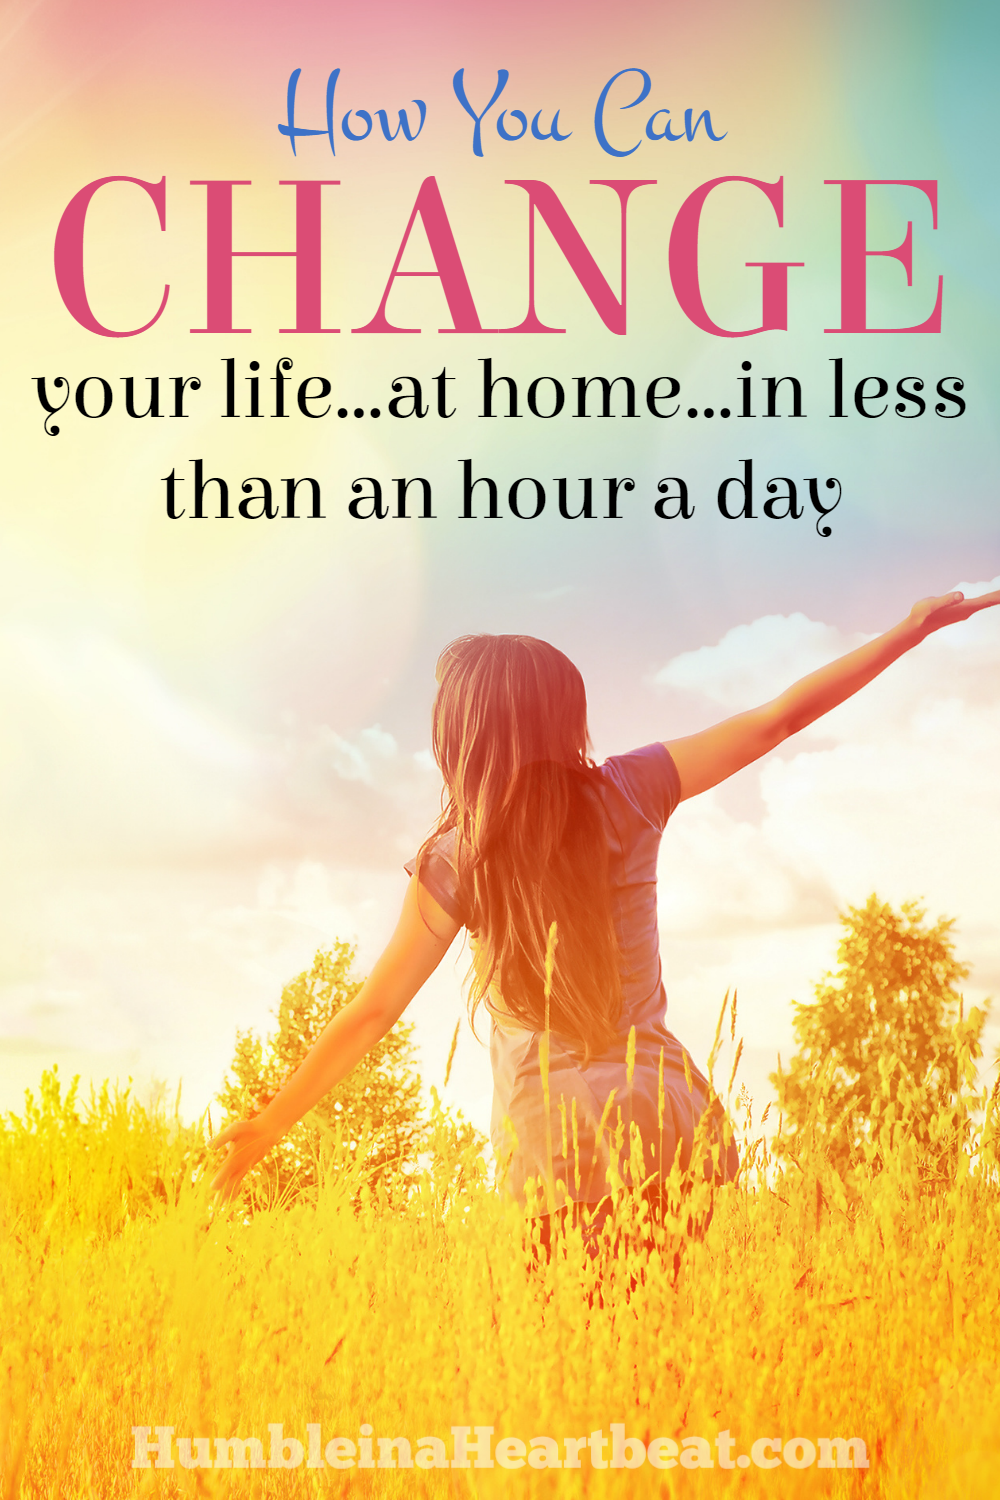 You might think that because you are a stay-at-home mom or otherwise stuck at home that you cannot do anything with your life. But that's just not true! You can change your life little by little without ever leaving your home!